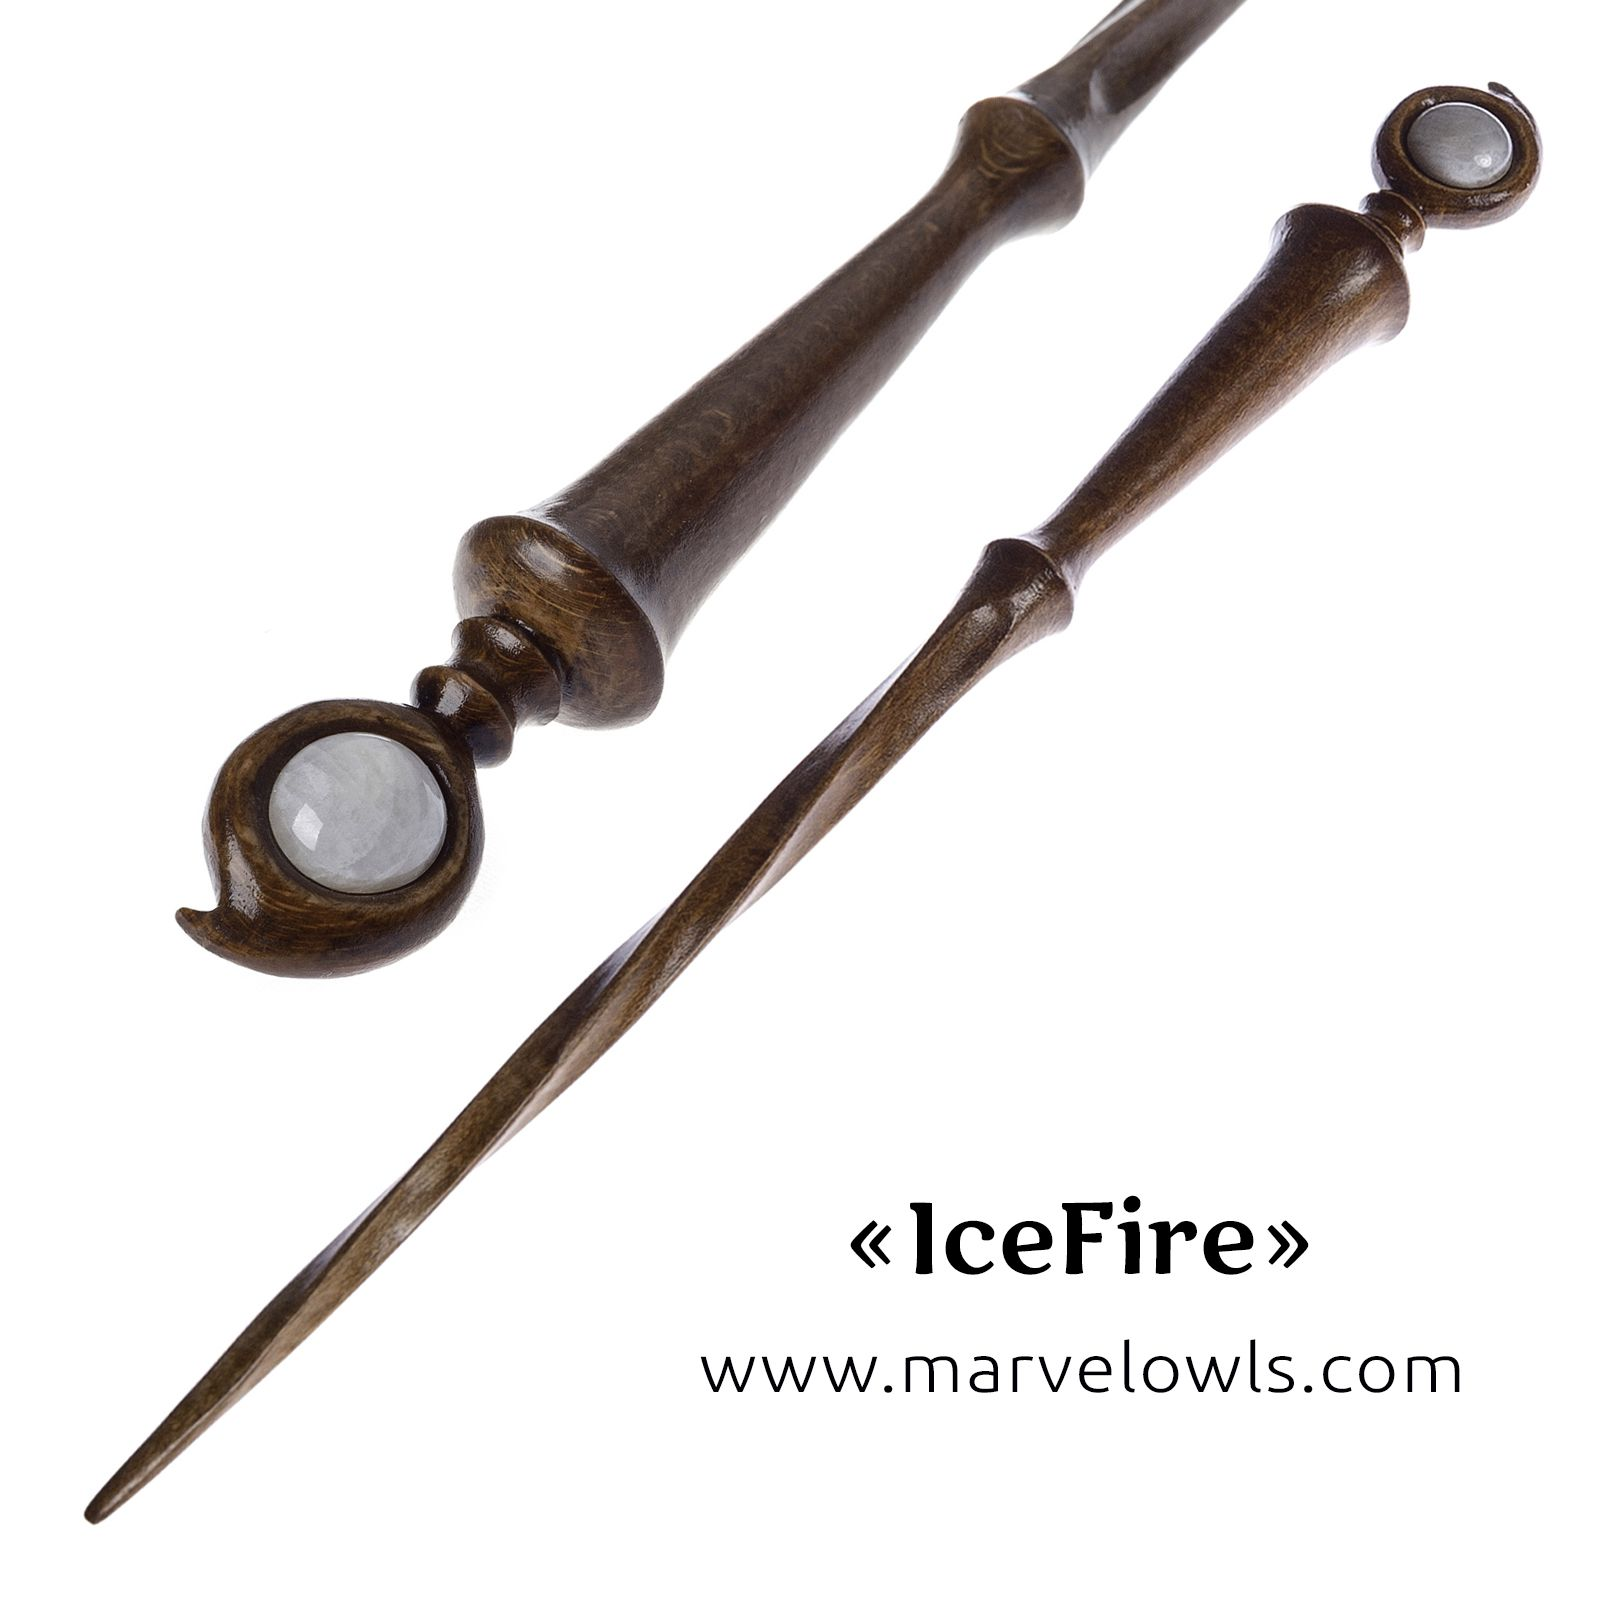 Wand Messen Marvelowls Wizard Wands Shop Wands Wizard Wand Wands